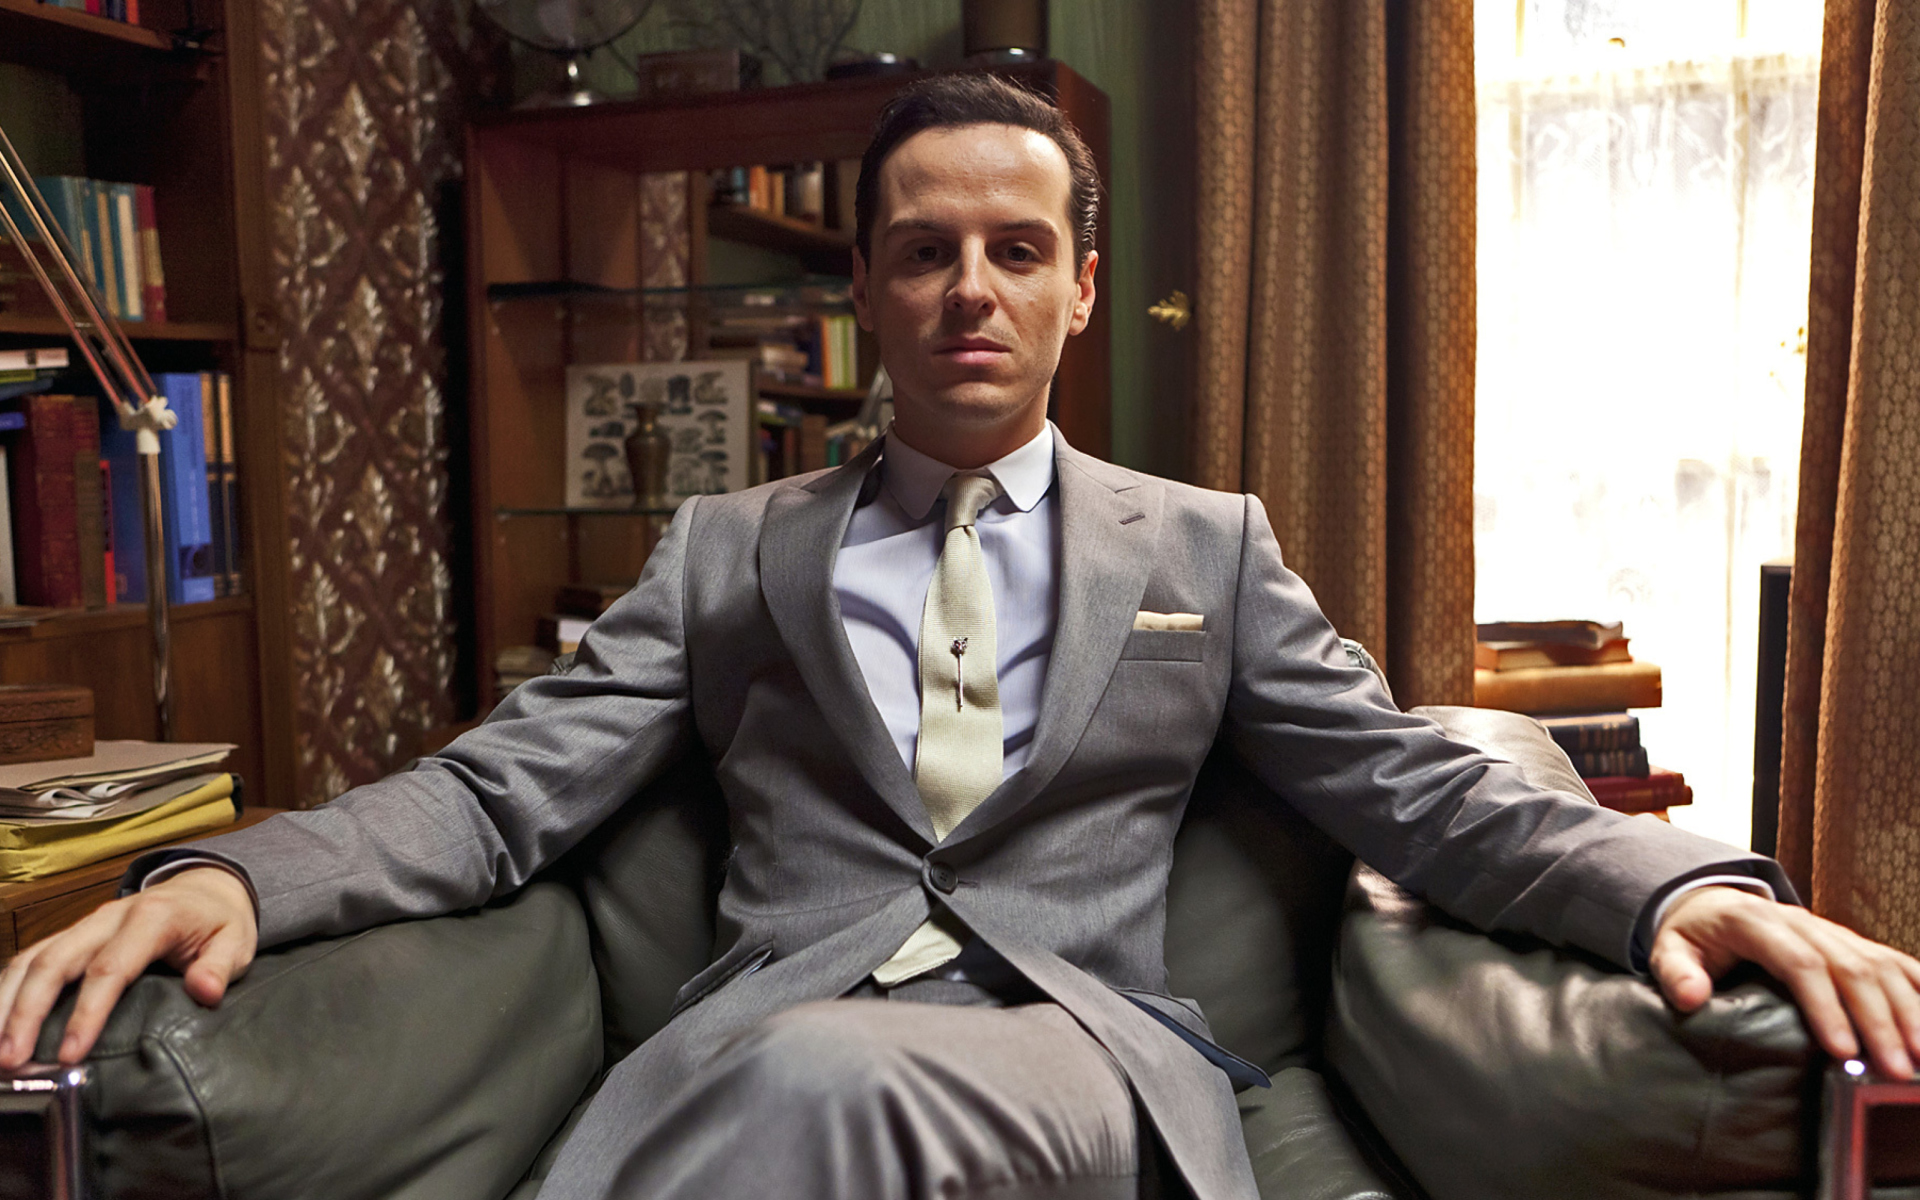 jim moriarty images hd - photo #31